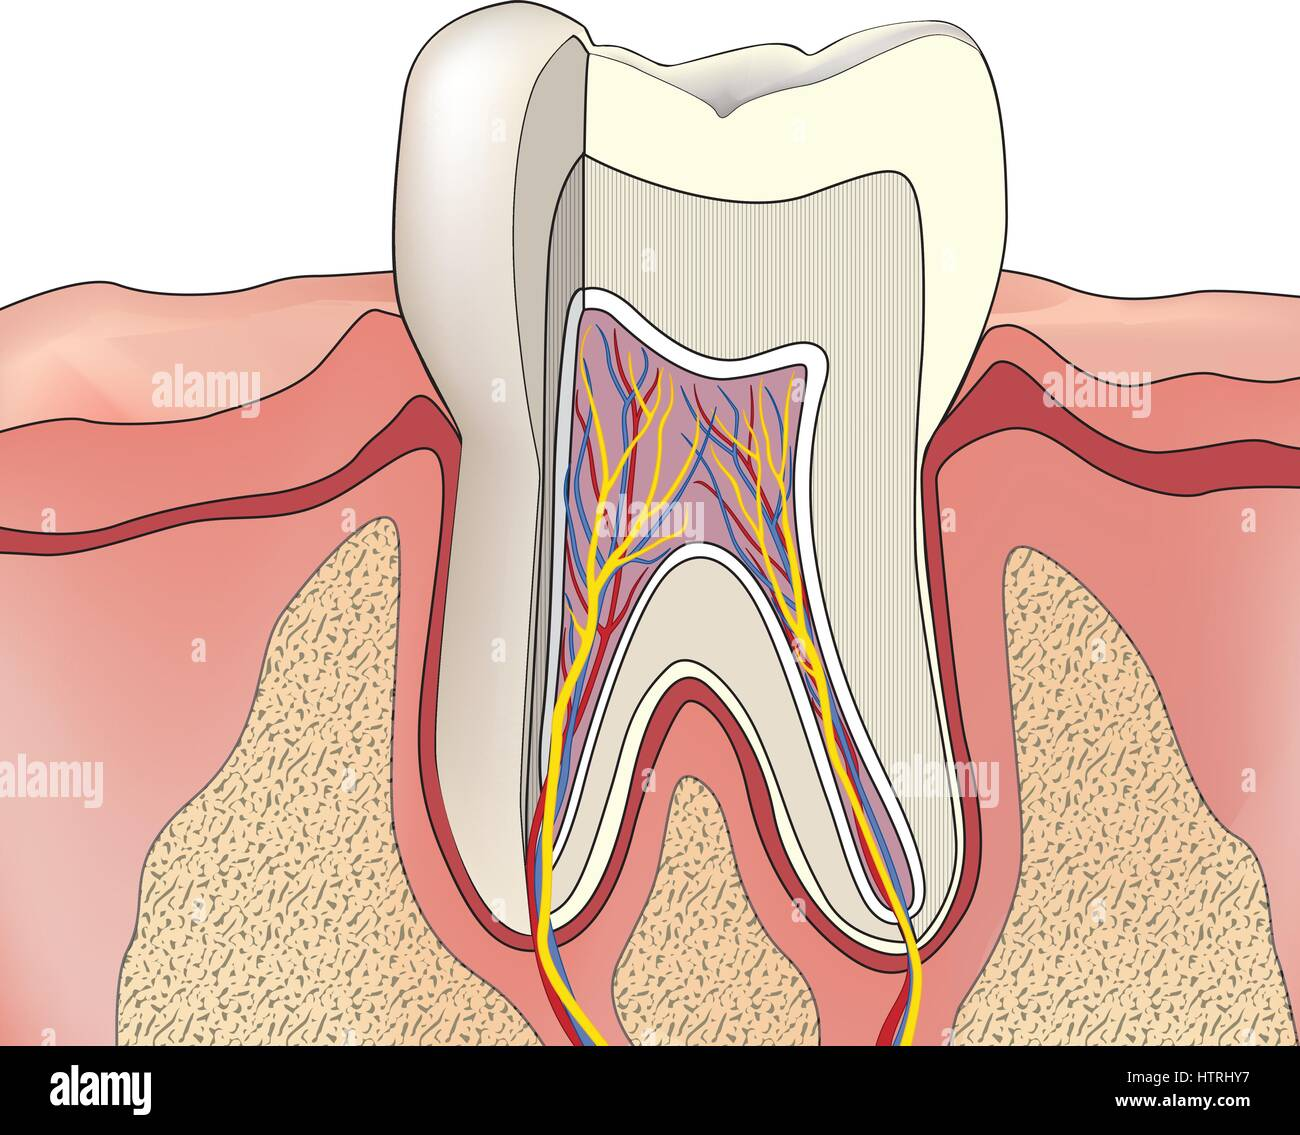 Structure Human Teeth Illustration Stock Photos Structure Human